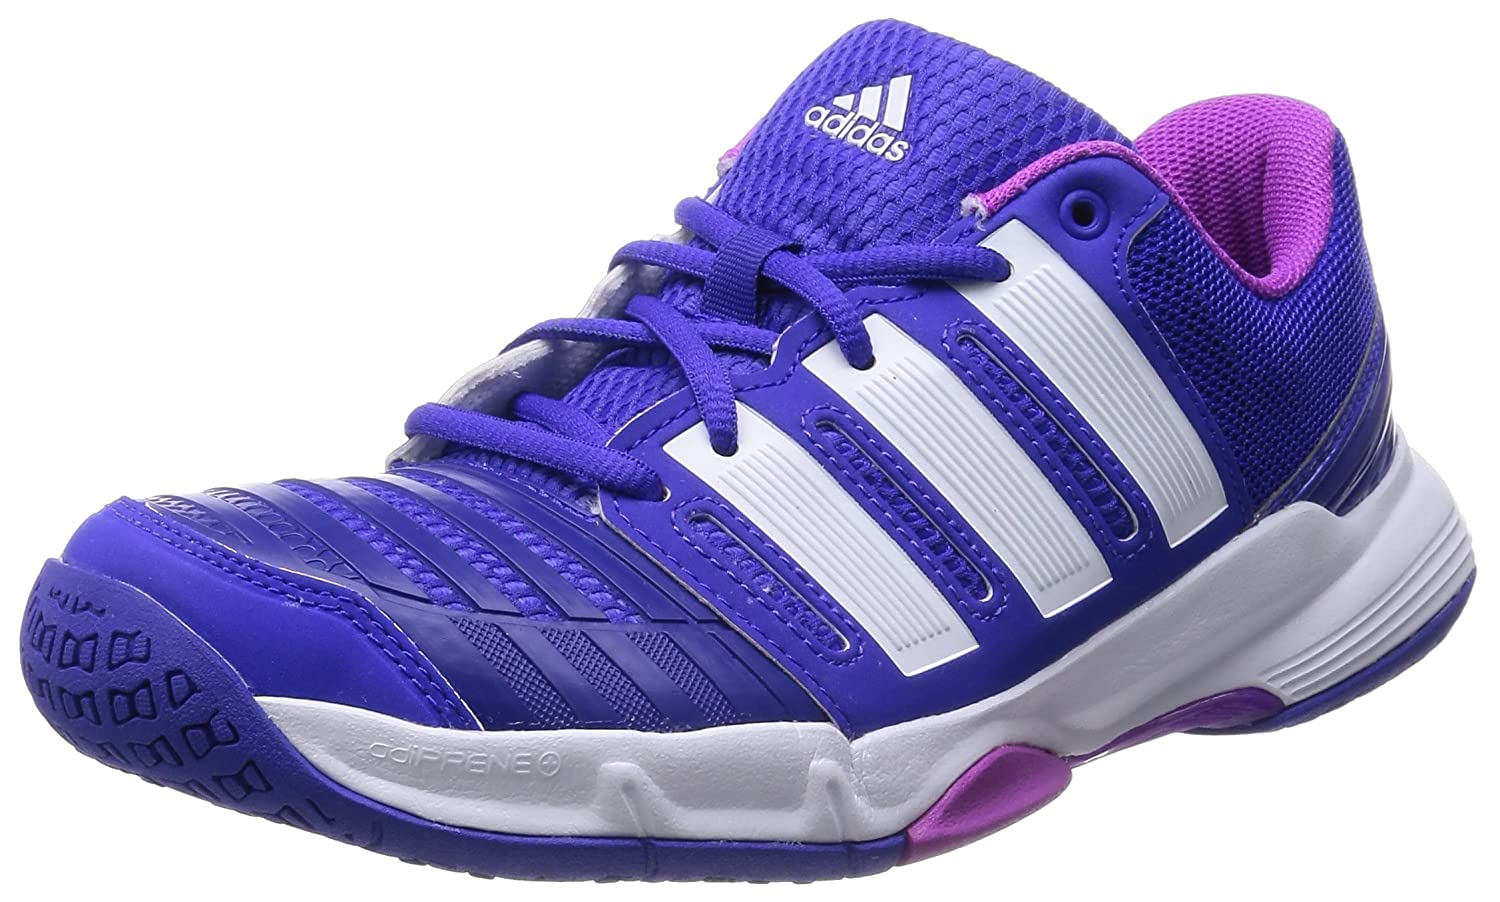 Adidas Court Stabil 11 Women's Court Shoes - SS15